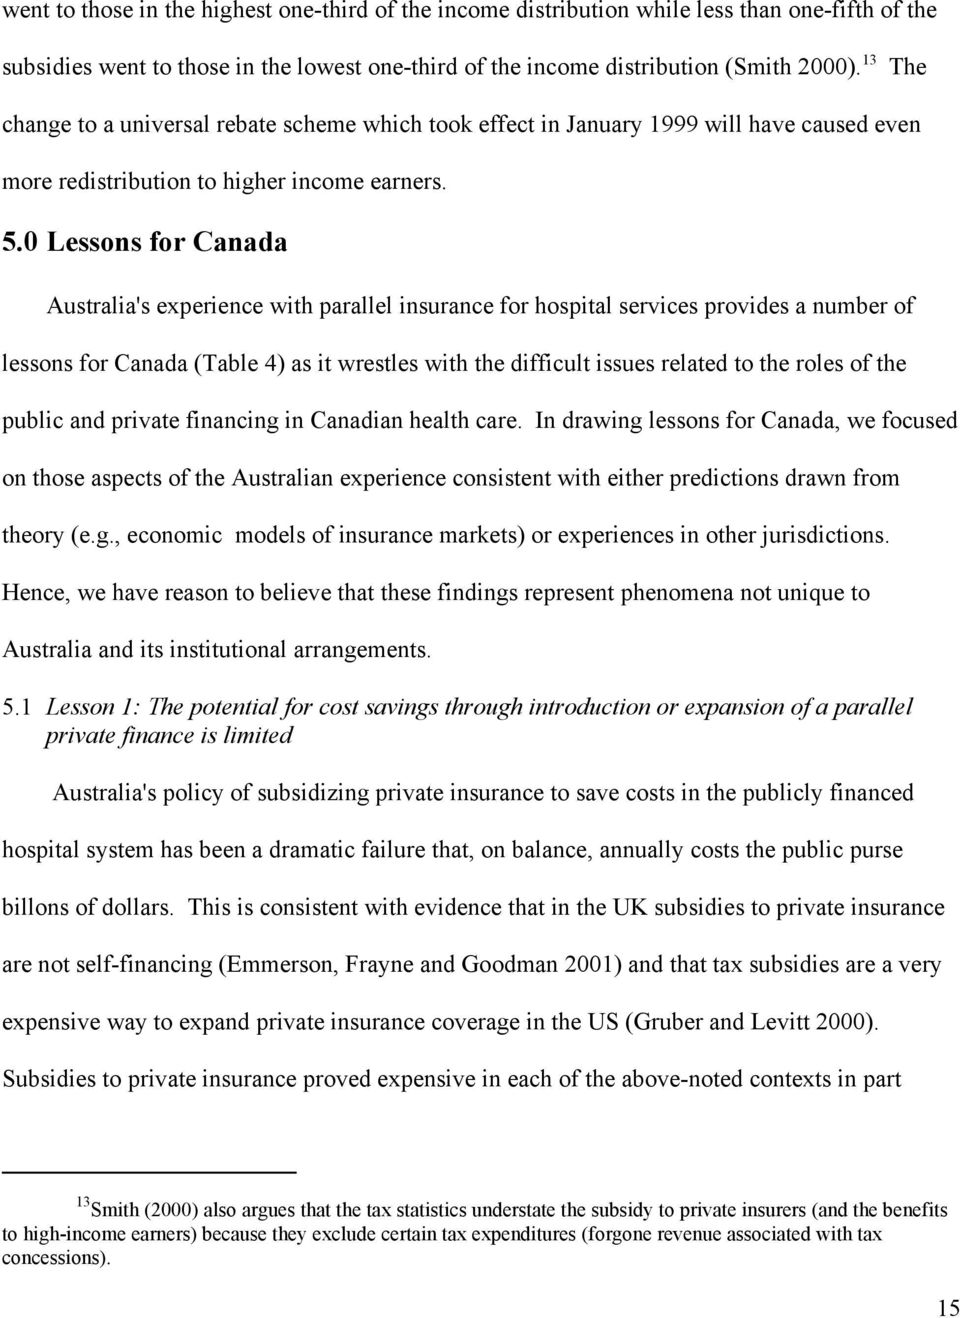 0 Lessons for Canada Australia's experience with parallel insurance for hospital services provides a number of lessons for Canada (Table 4) as it wrestles with the difficult issues related to the